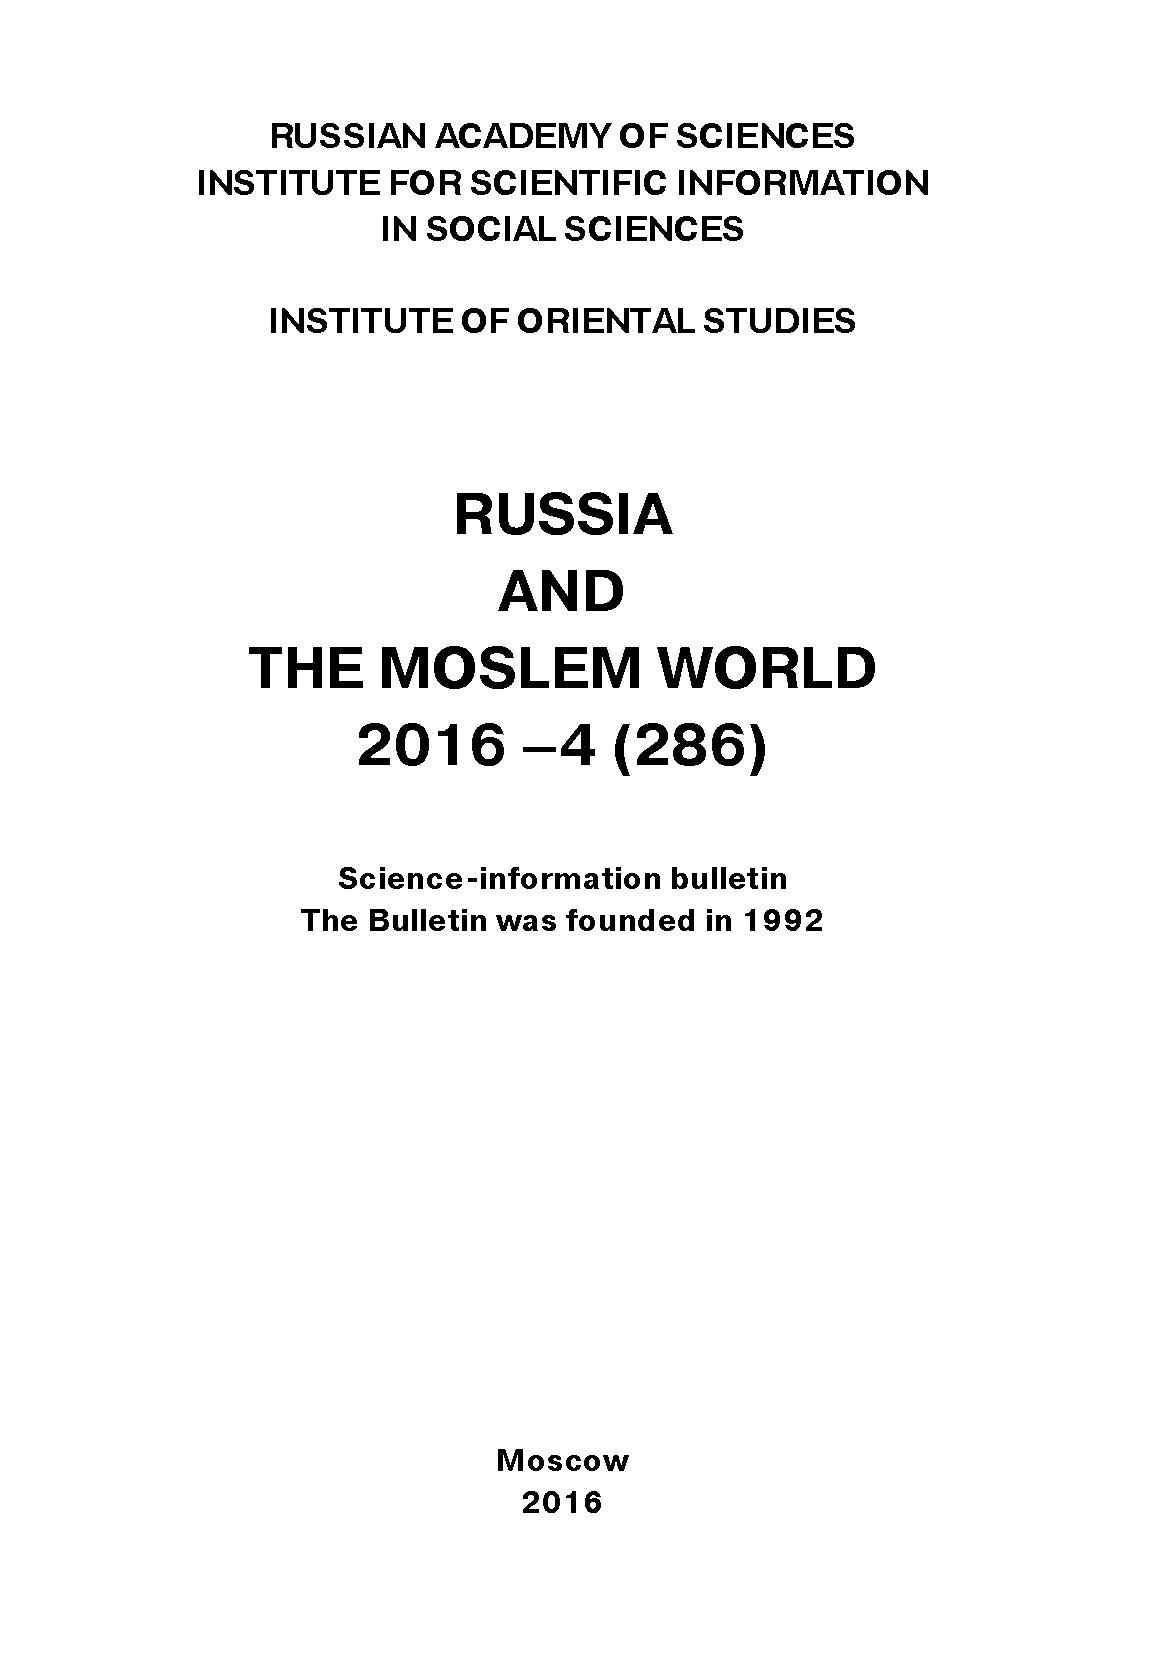 Сборник статей Russia and the Moslem World № 04 / 2016 сборник статей russia and the moslem world 05 2016